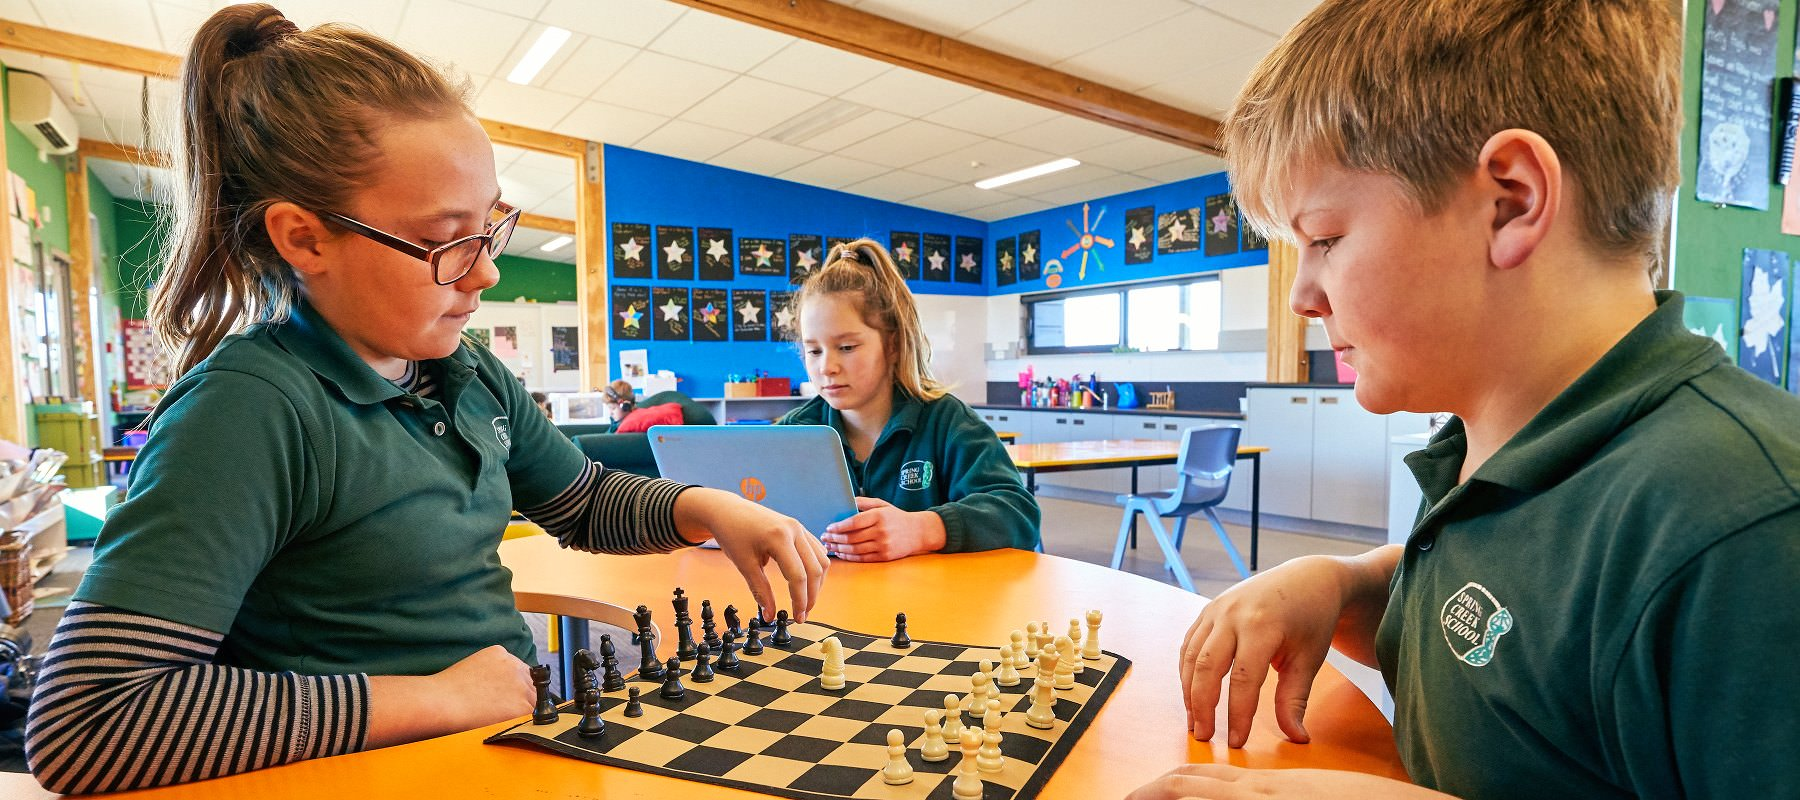 Playing chess Spring Creek School